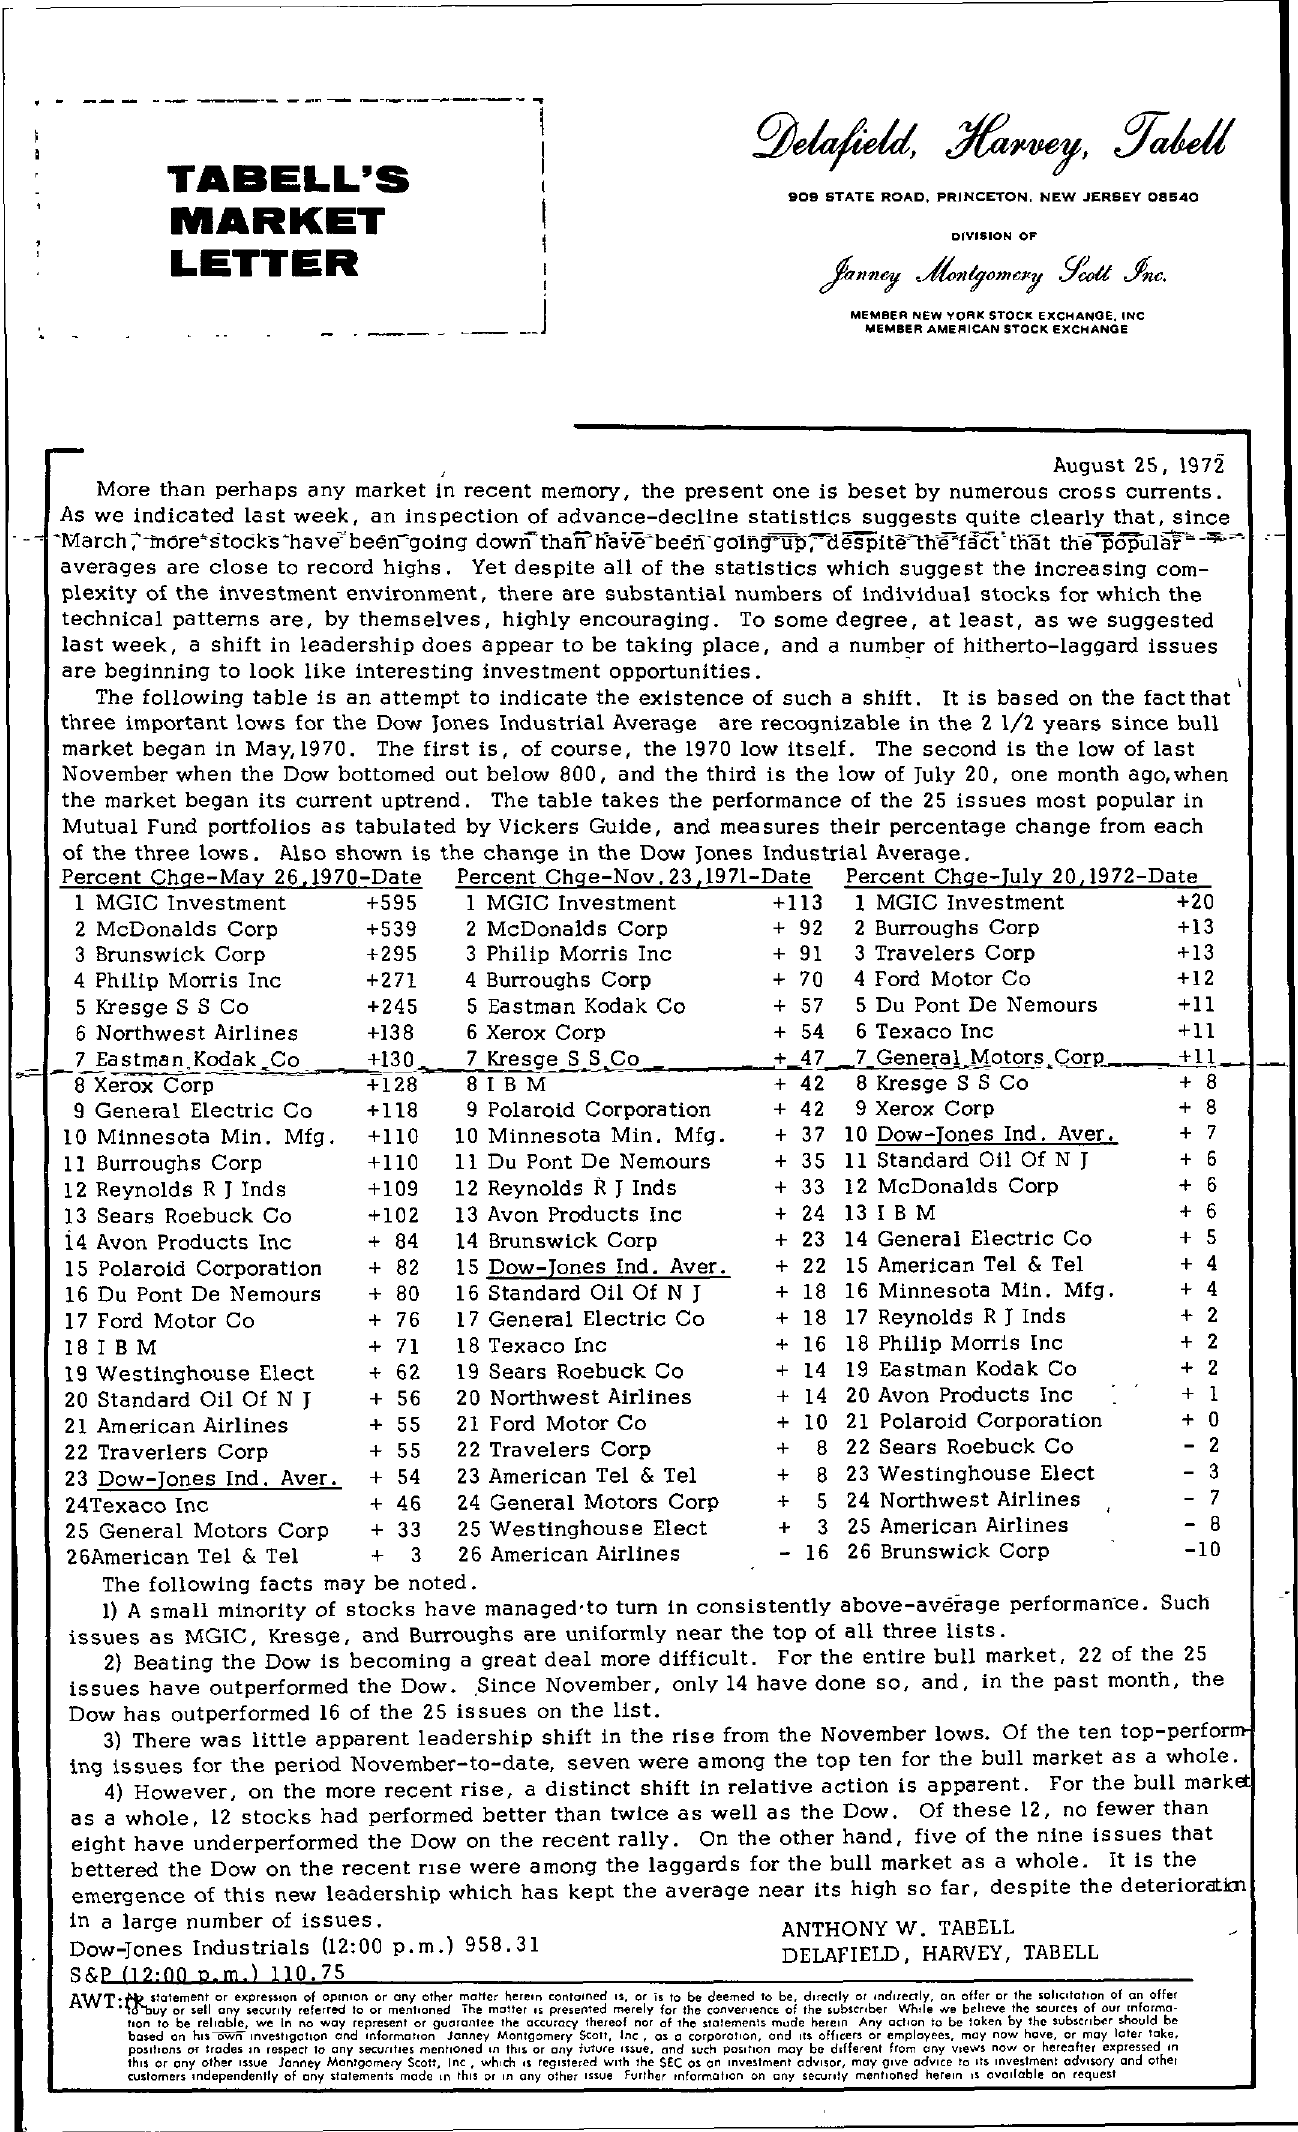 Tabell's Market Letter - August 25, 1972